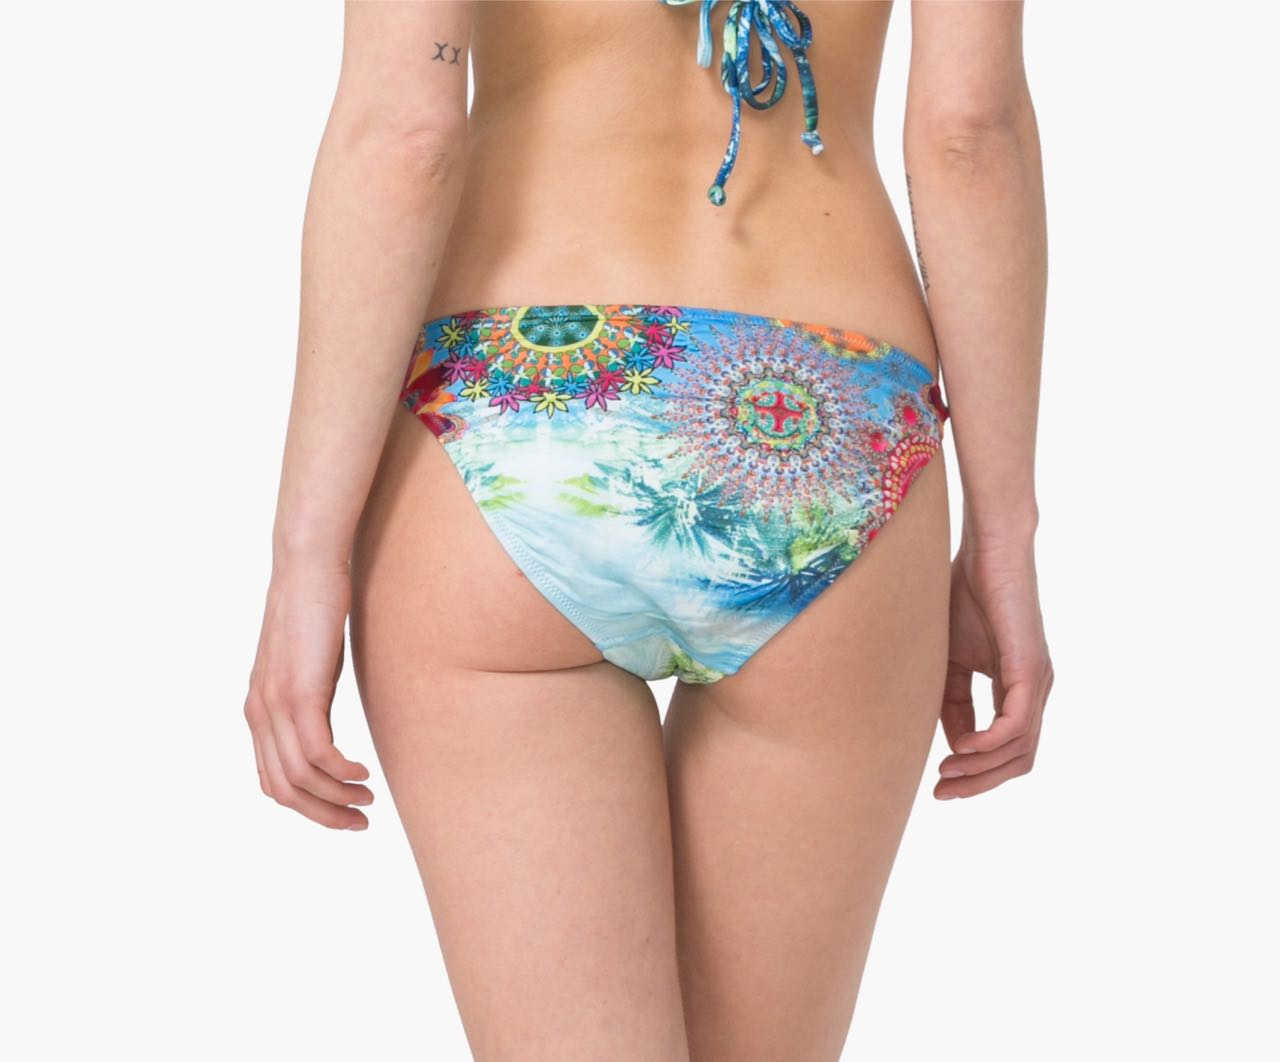 Brazilian Bikini Shop offers exclusive swimwear, bikinis, one piece suites and accessories. We are the destination for beautiful designer swimwear. Swimwear & beach accessories. New! Available sizes. S M L In our online store you will find a wide range of swimwear for every occasion. The pieces are original and unique, they come mainly.